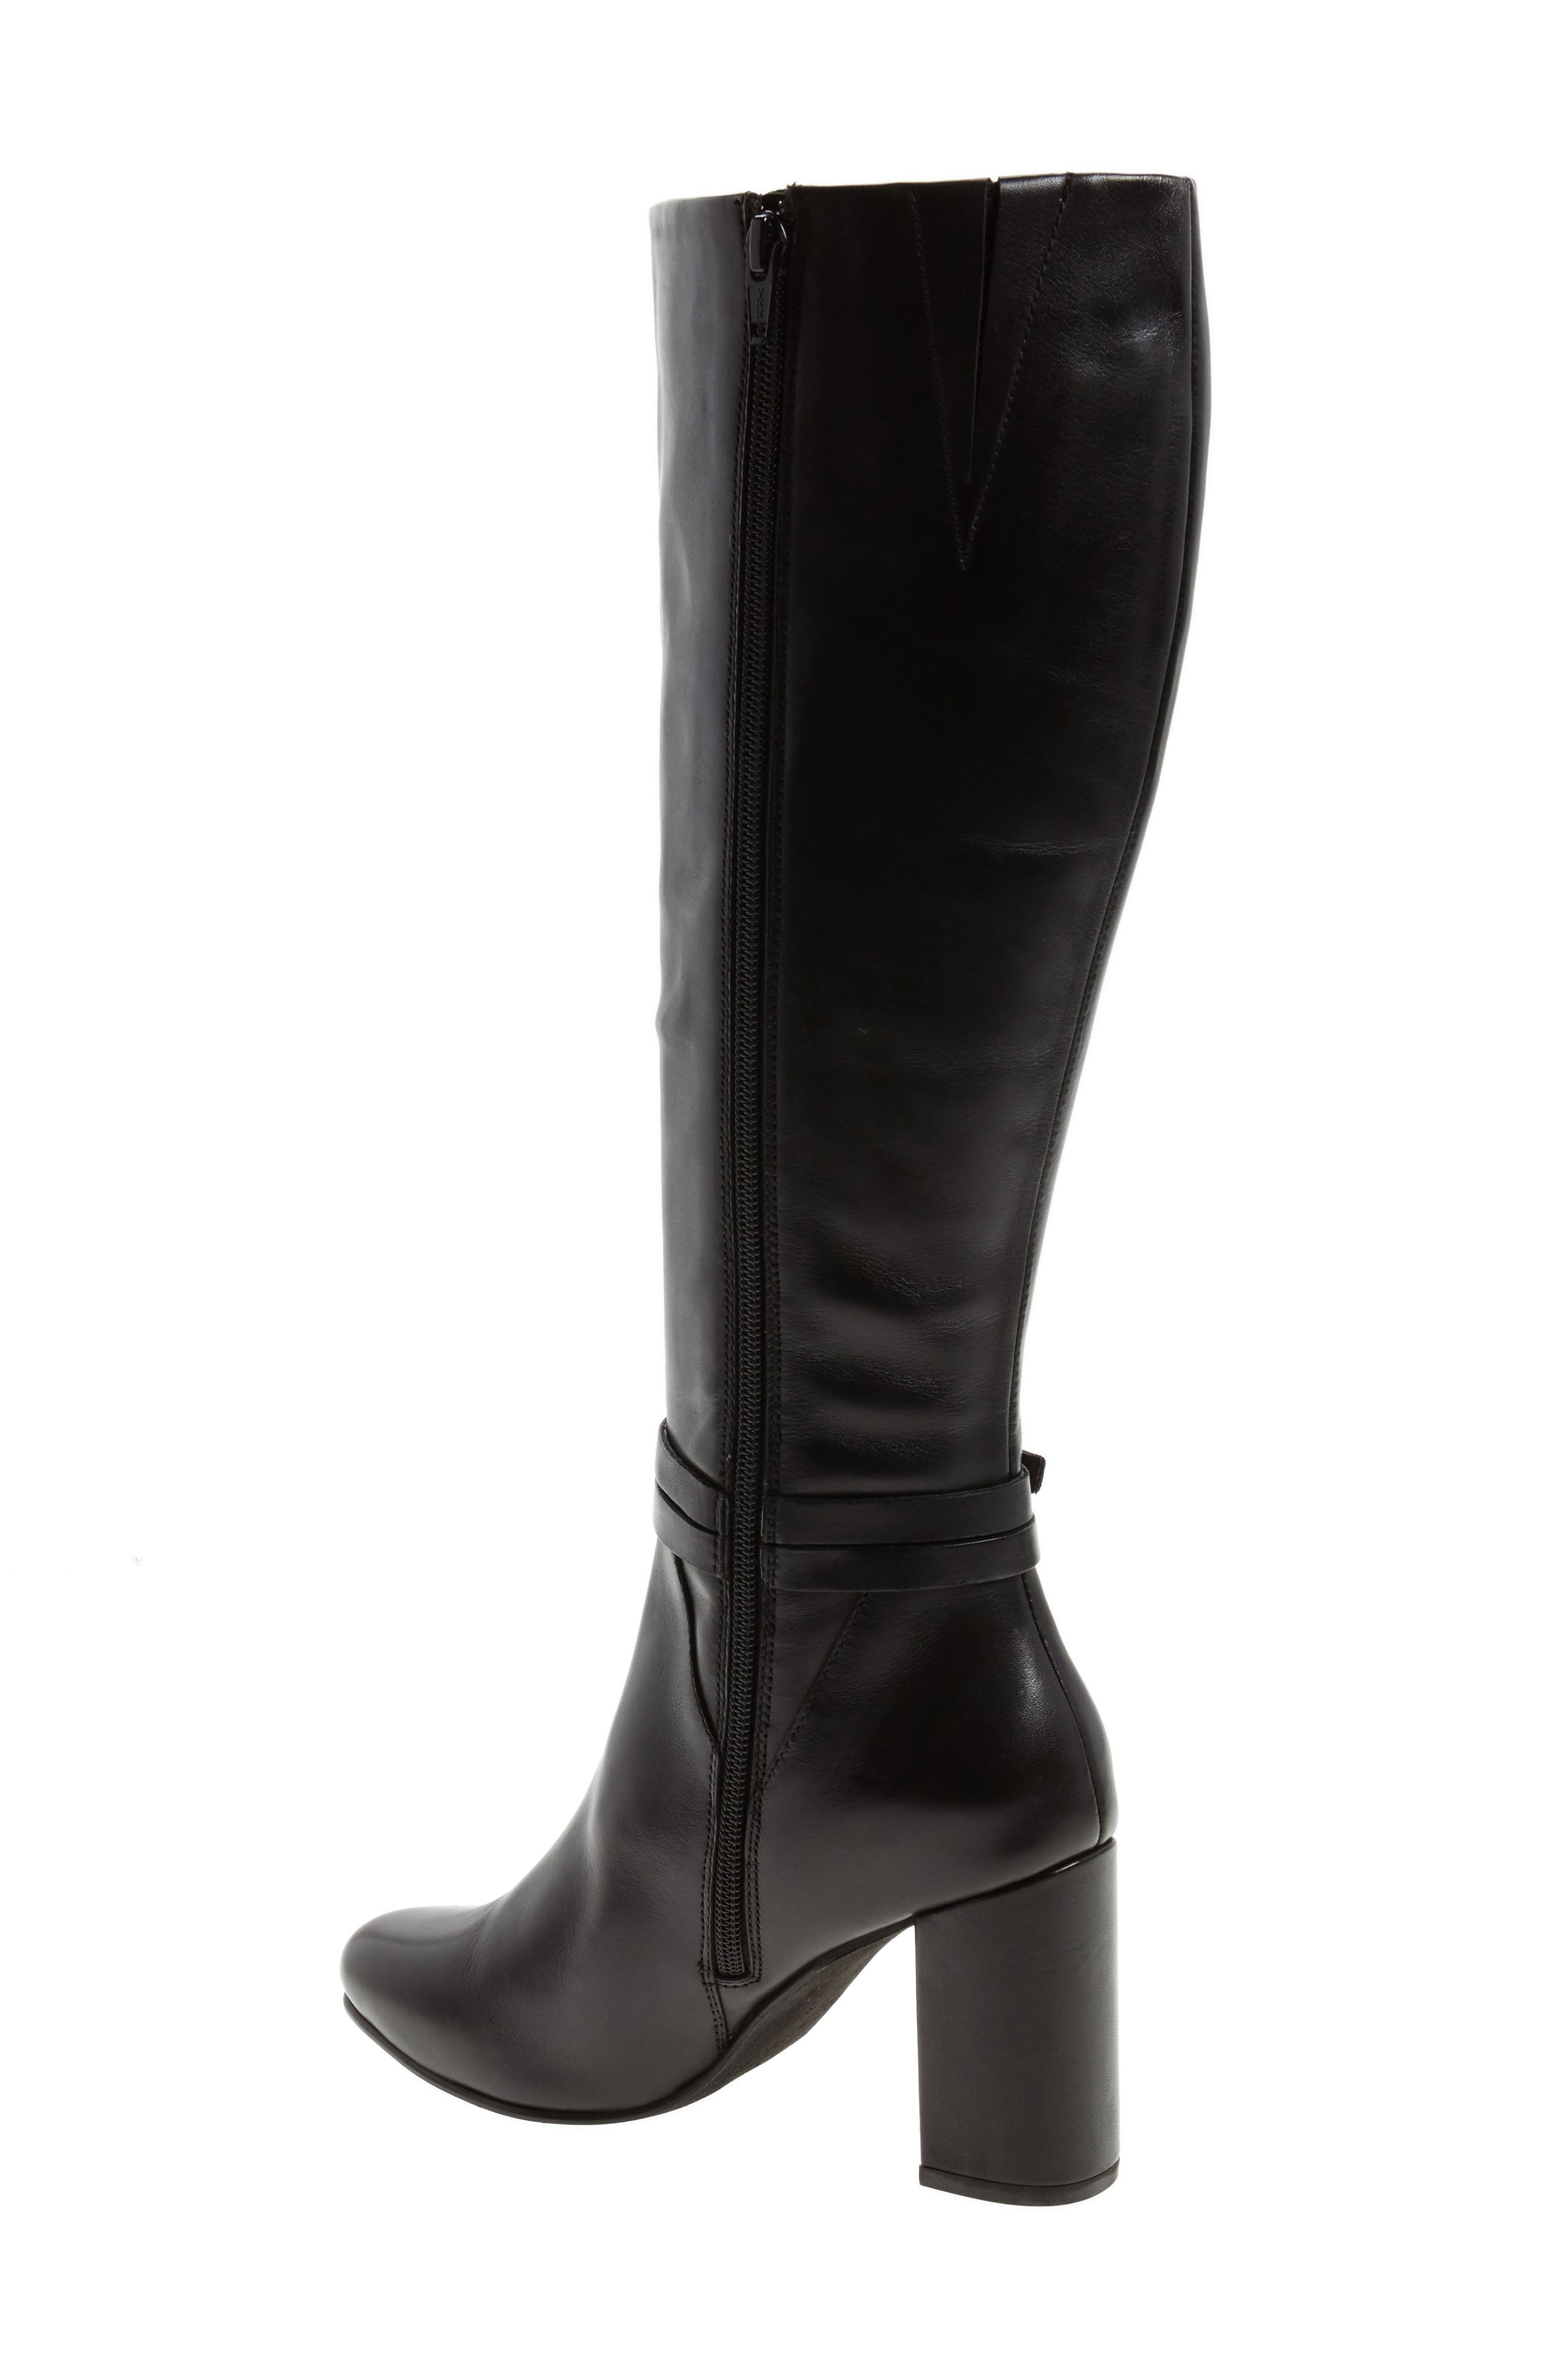 Ovation Knee High Boot,                             Alternate thumbnail 2, color,                             001